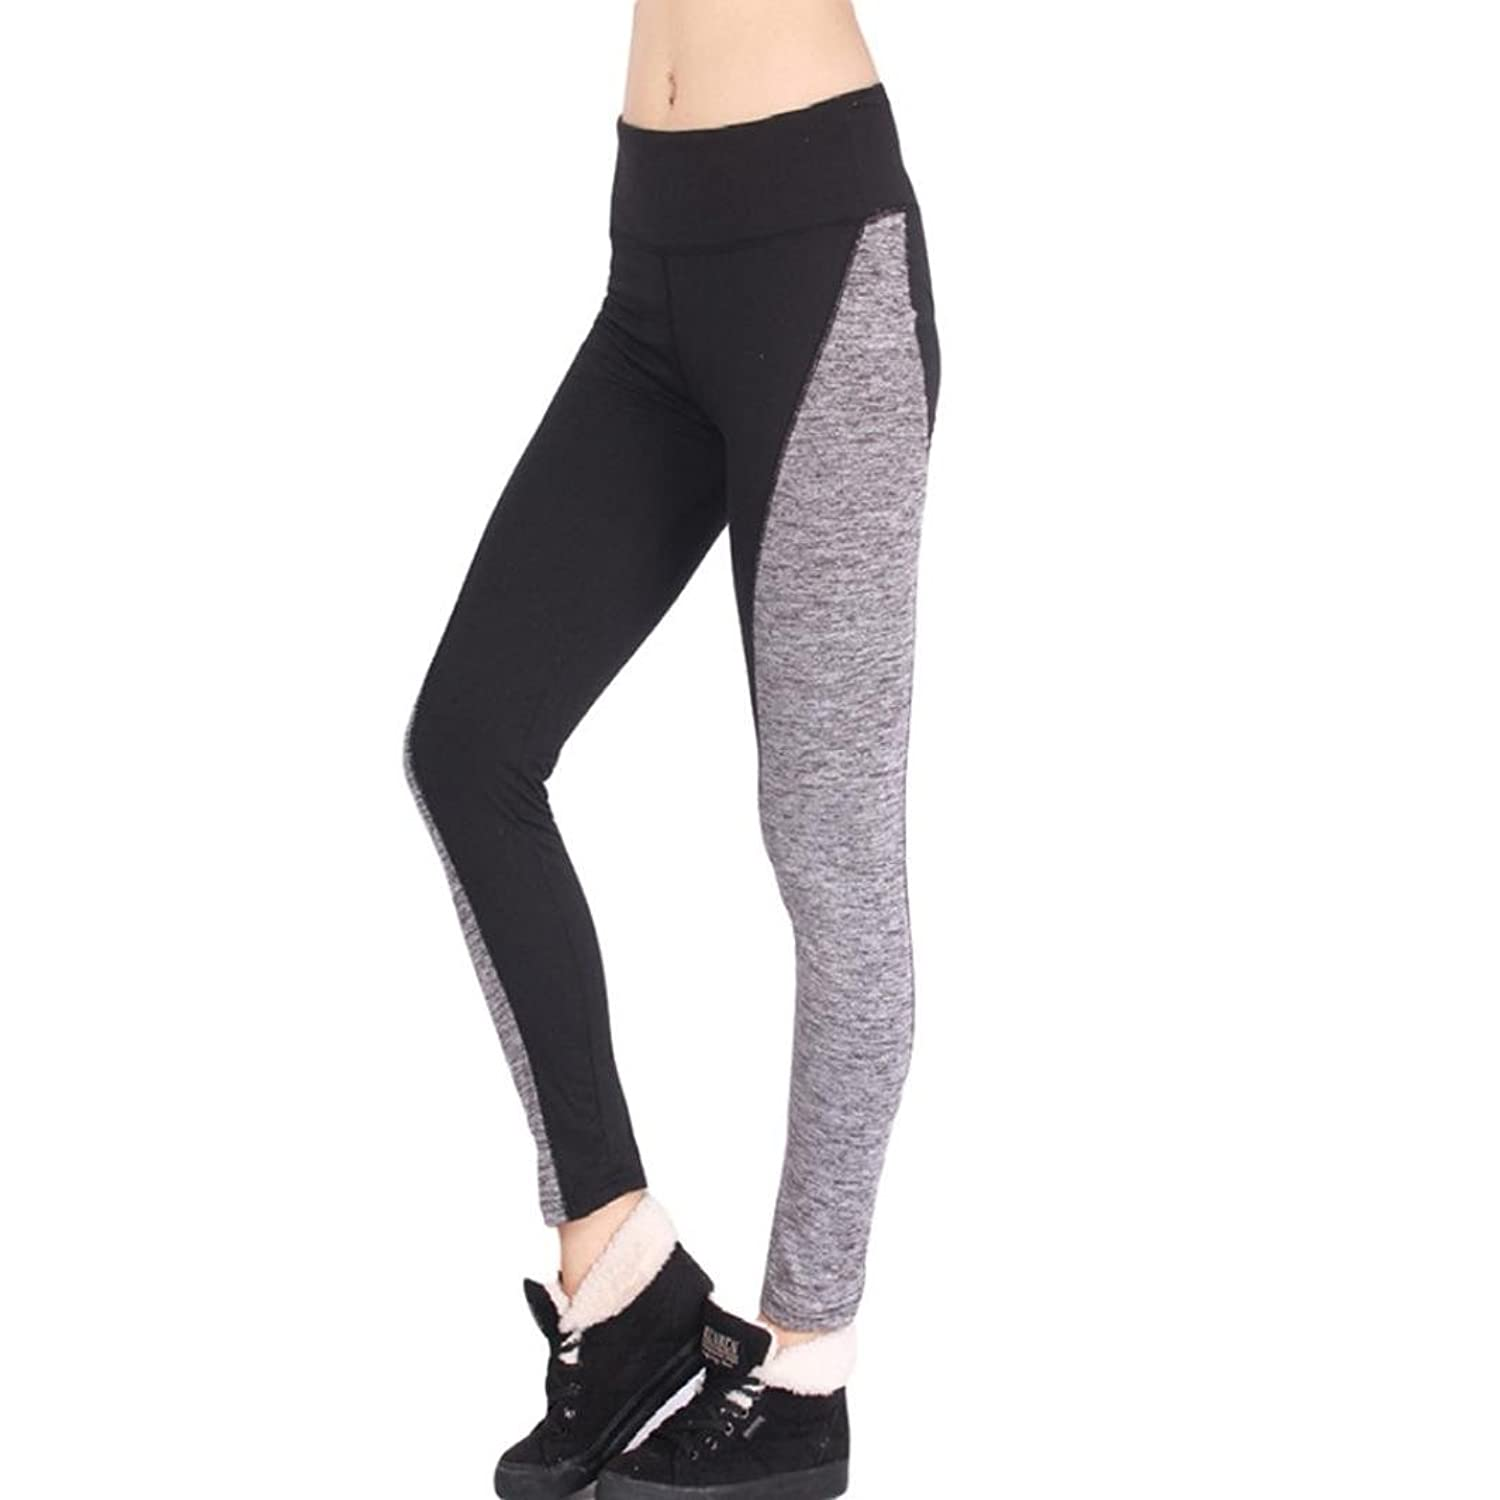 Amazon Best Sellers: Best Women's Yoga Pants